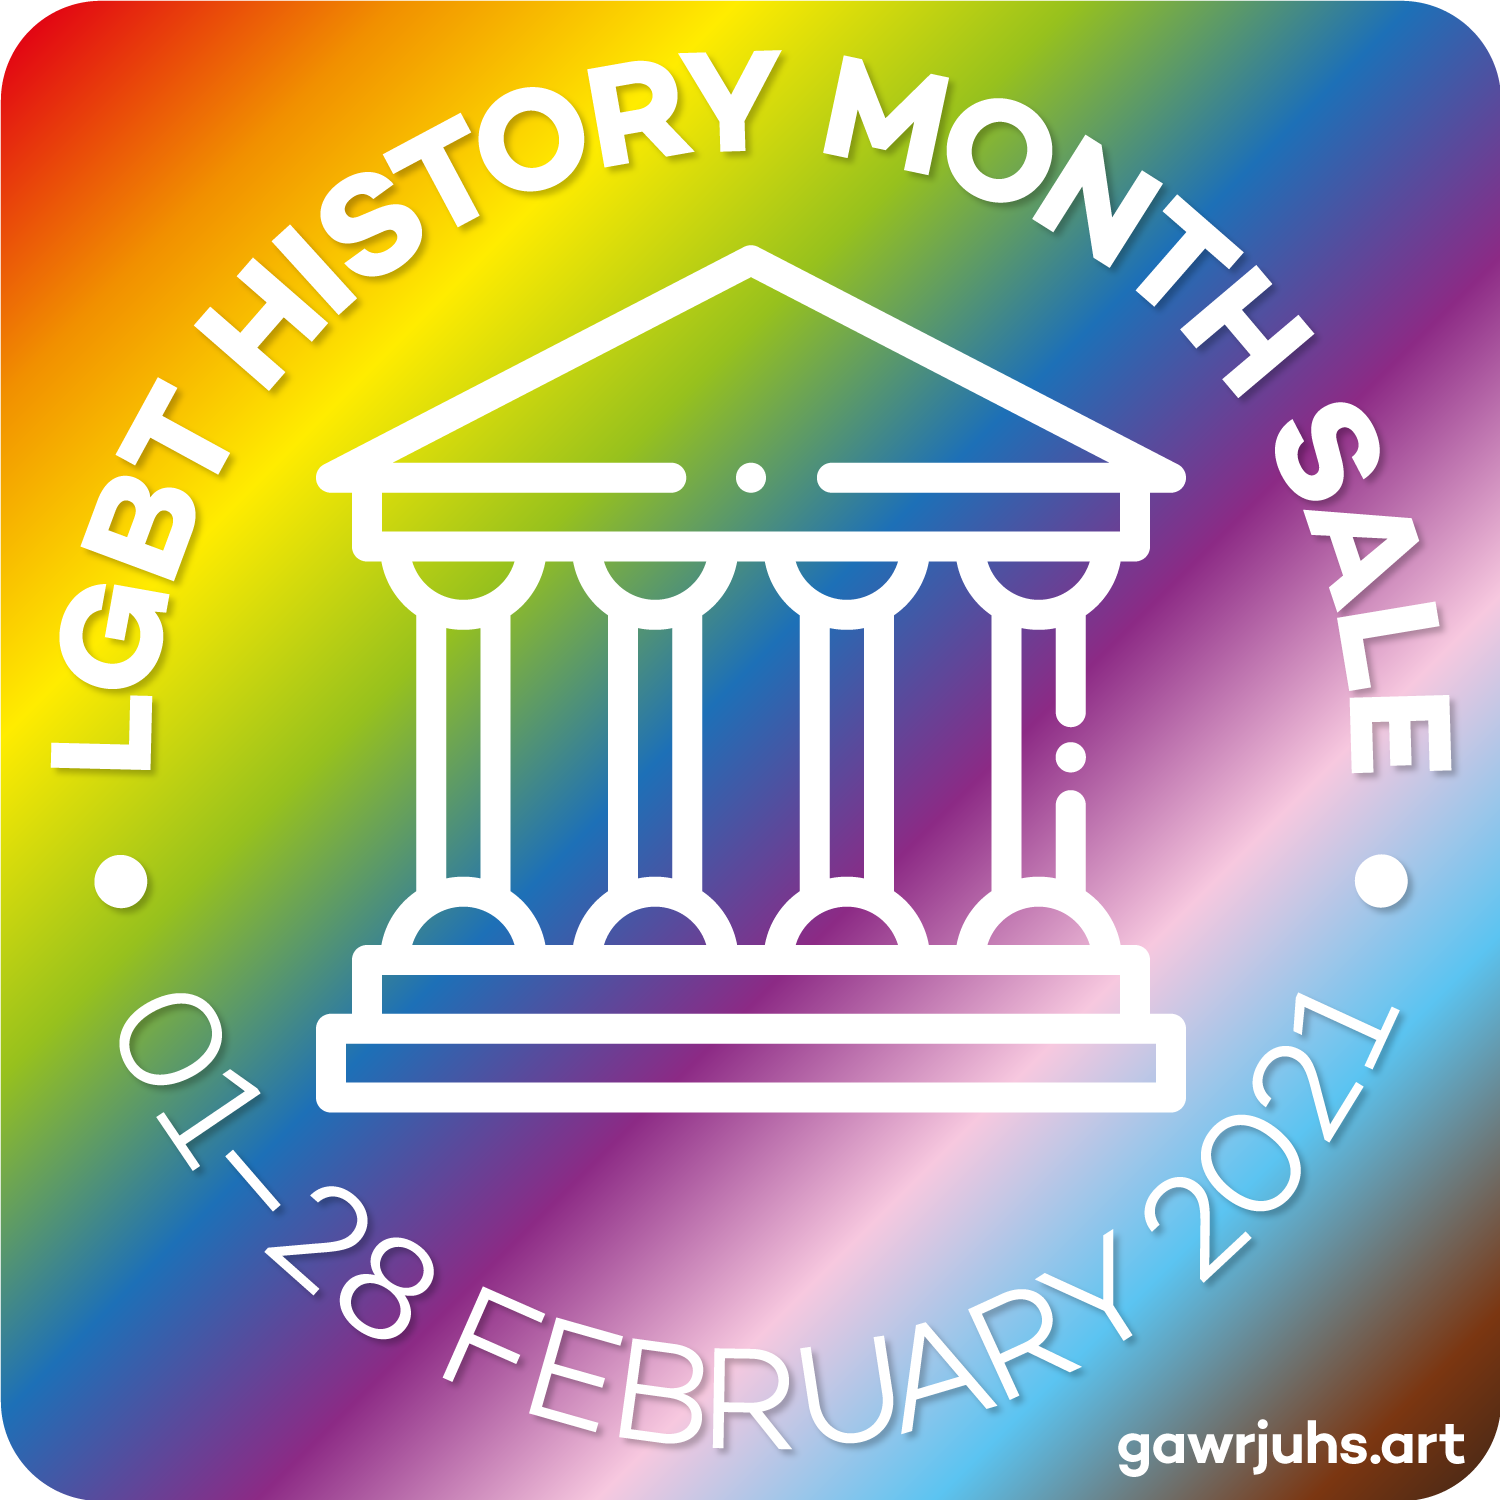 lgbt-history-month-sale-temple-icon